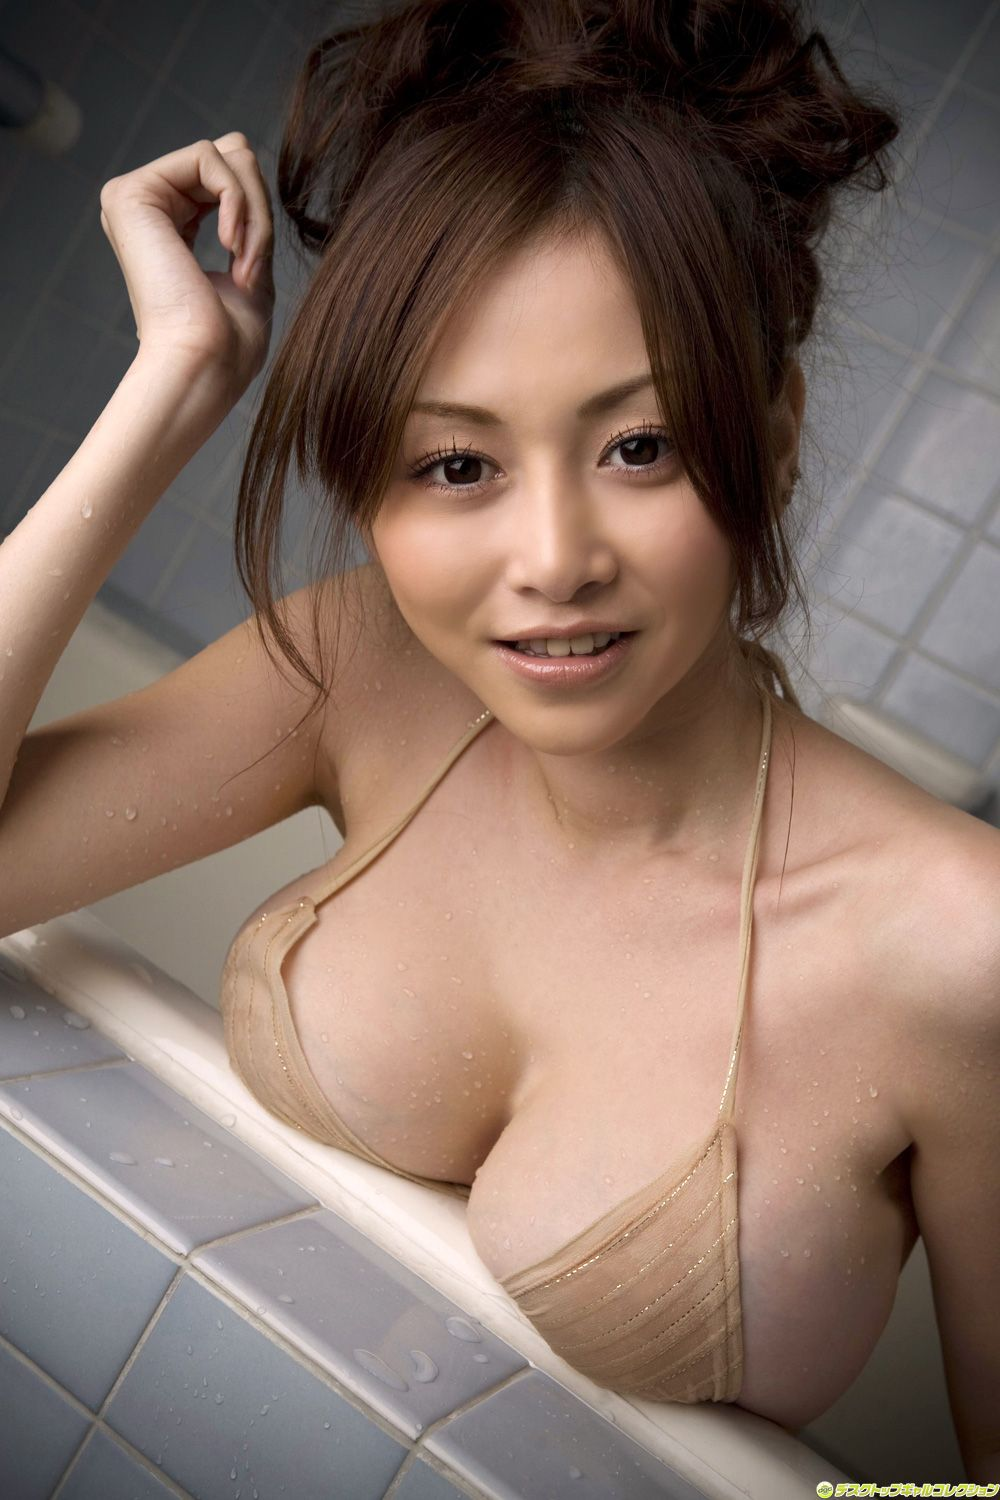 Sexy asian girl in shower, nude thai girls in bathtub